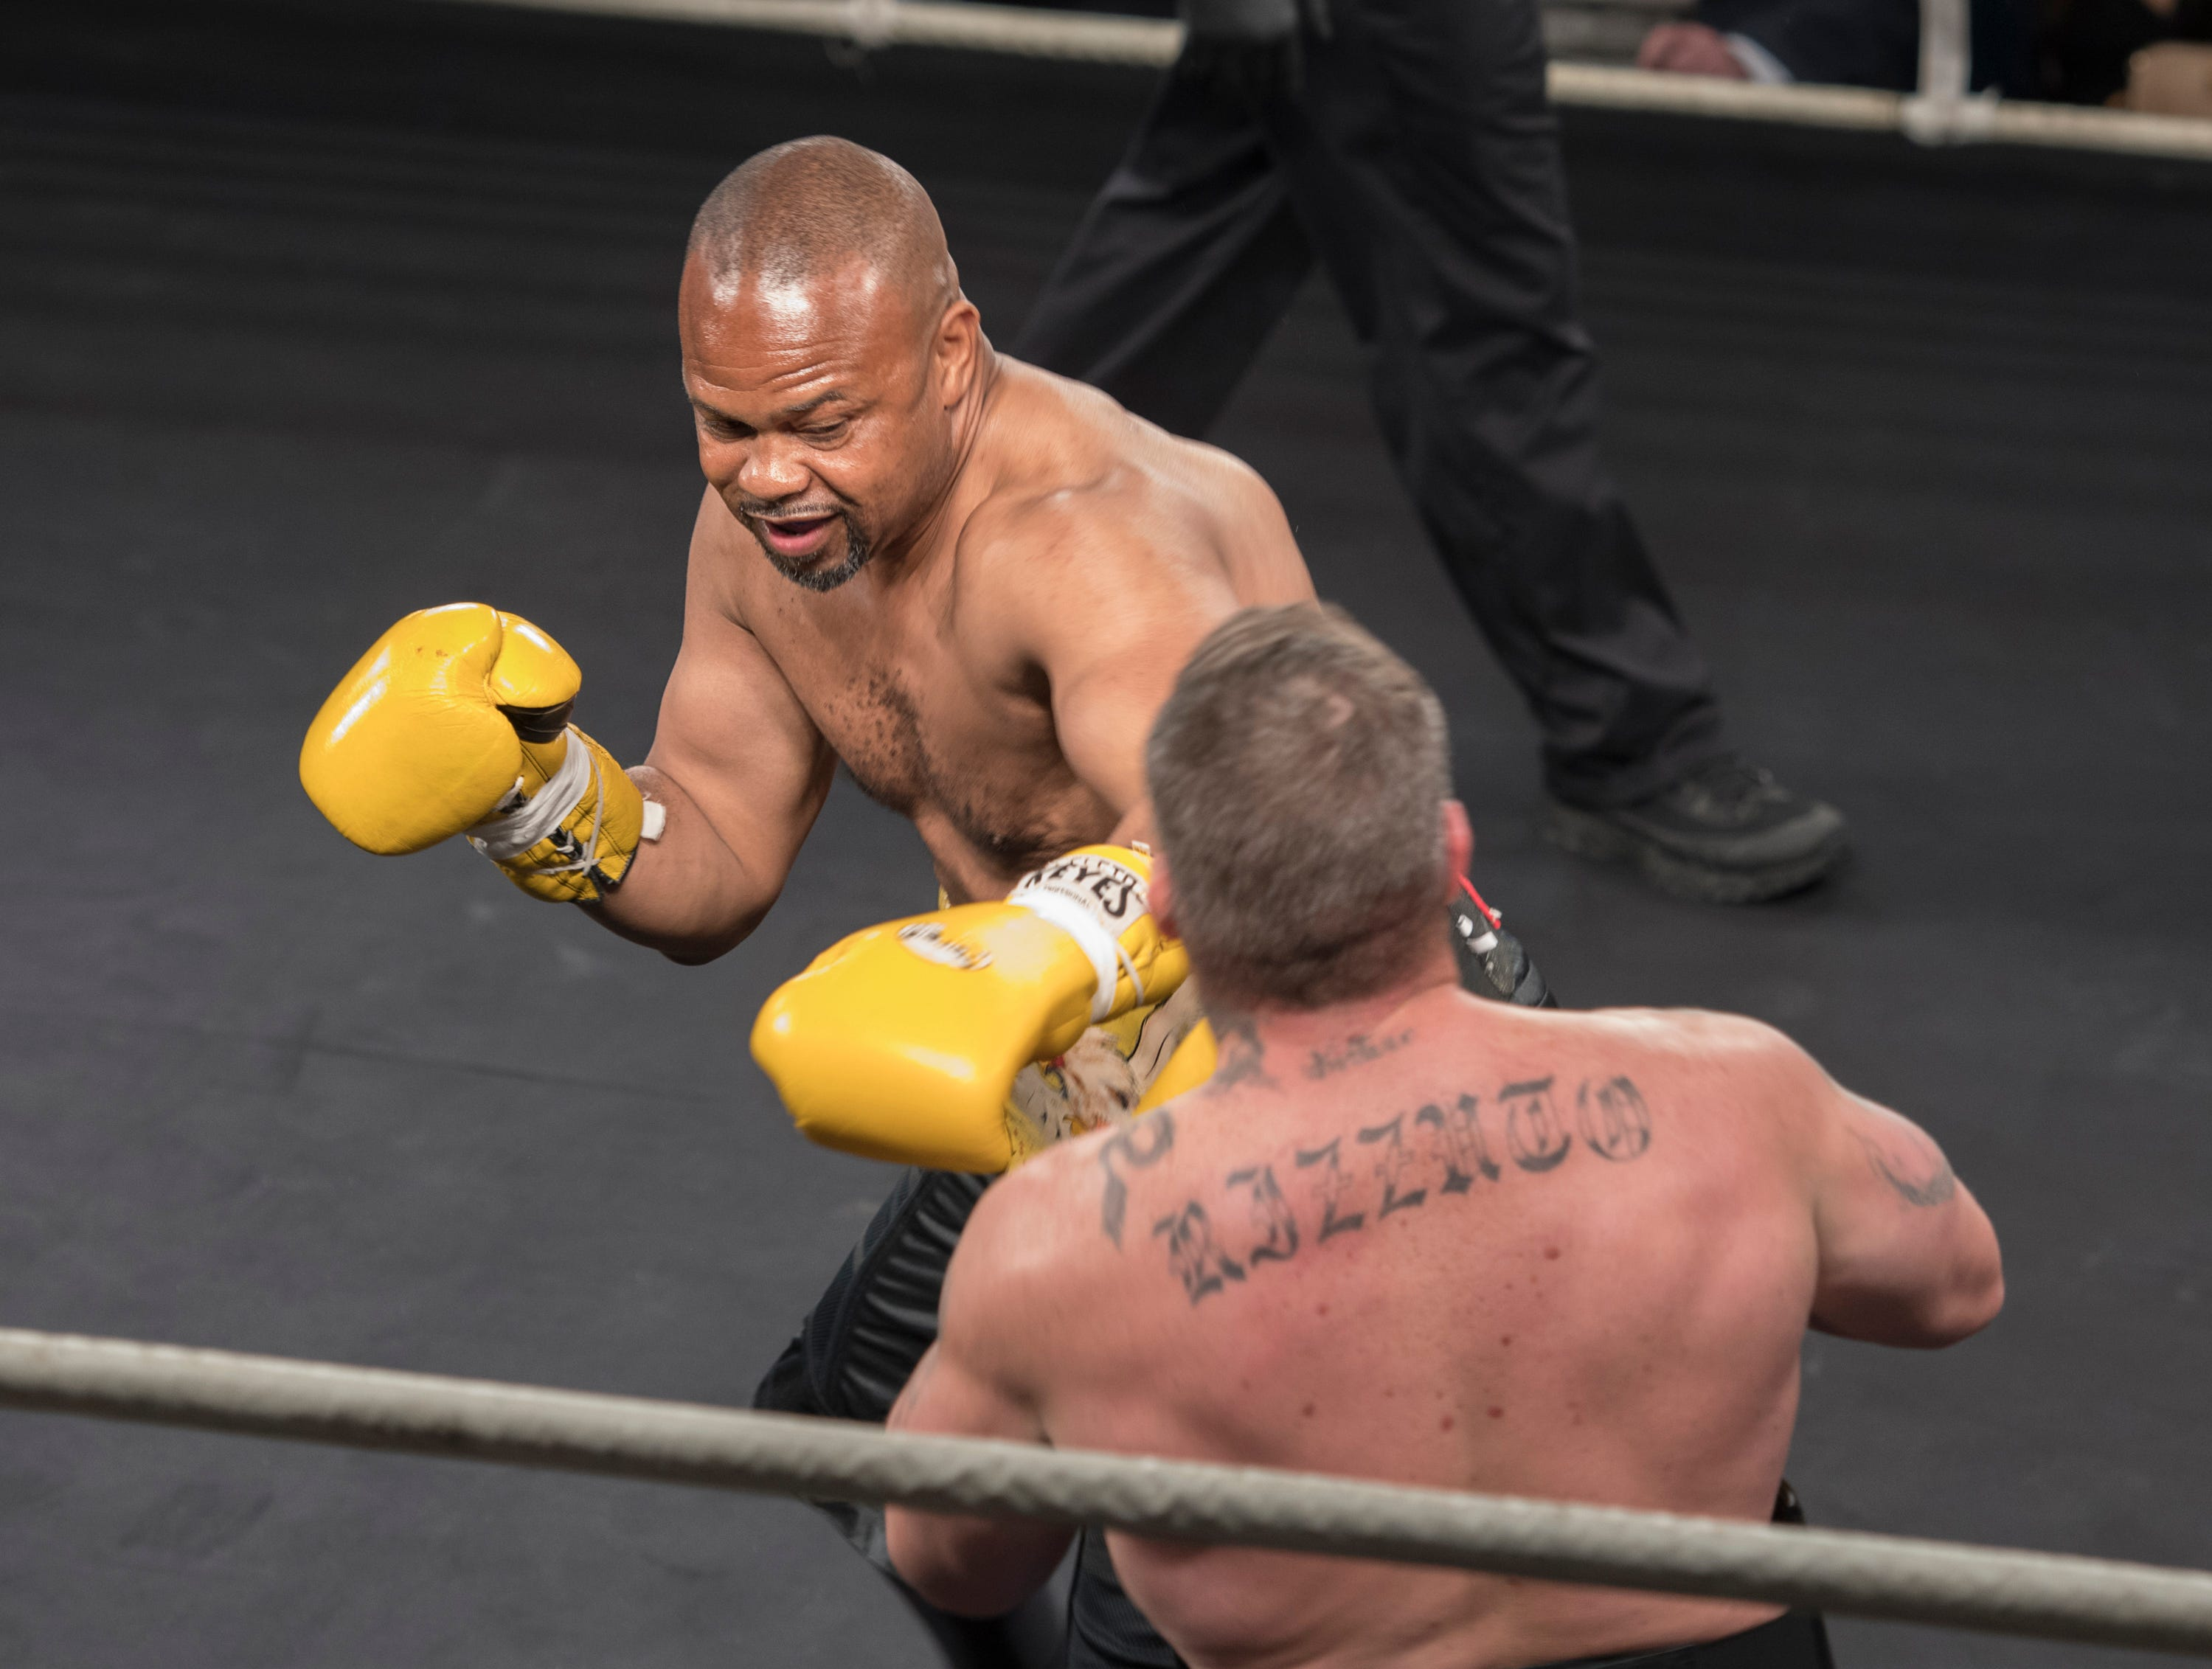 Roy Jones Jr., left, fights against Dion Rizzuto in an exhibition match during the Island Fights 52 at the Jadji Shrine in Pensacola on Thursday, February 7, 2019.